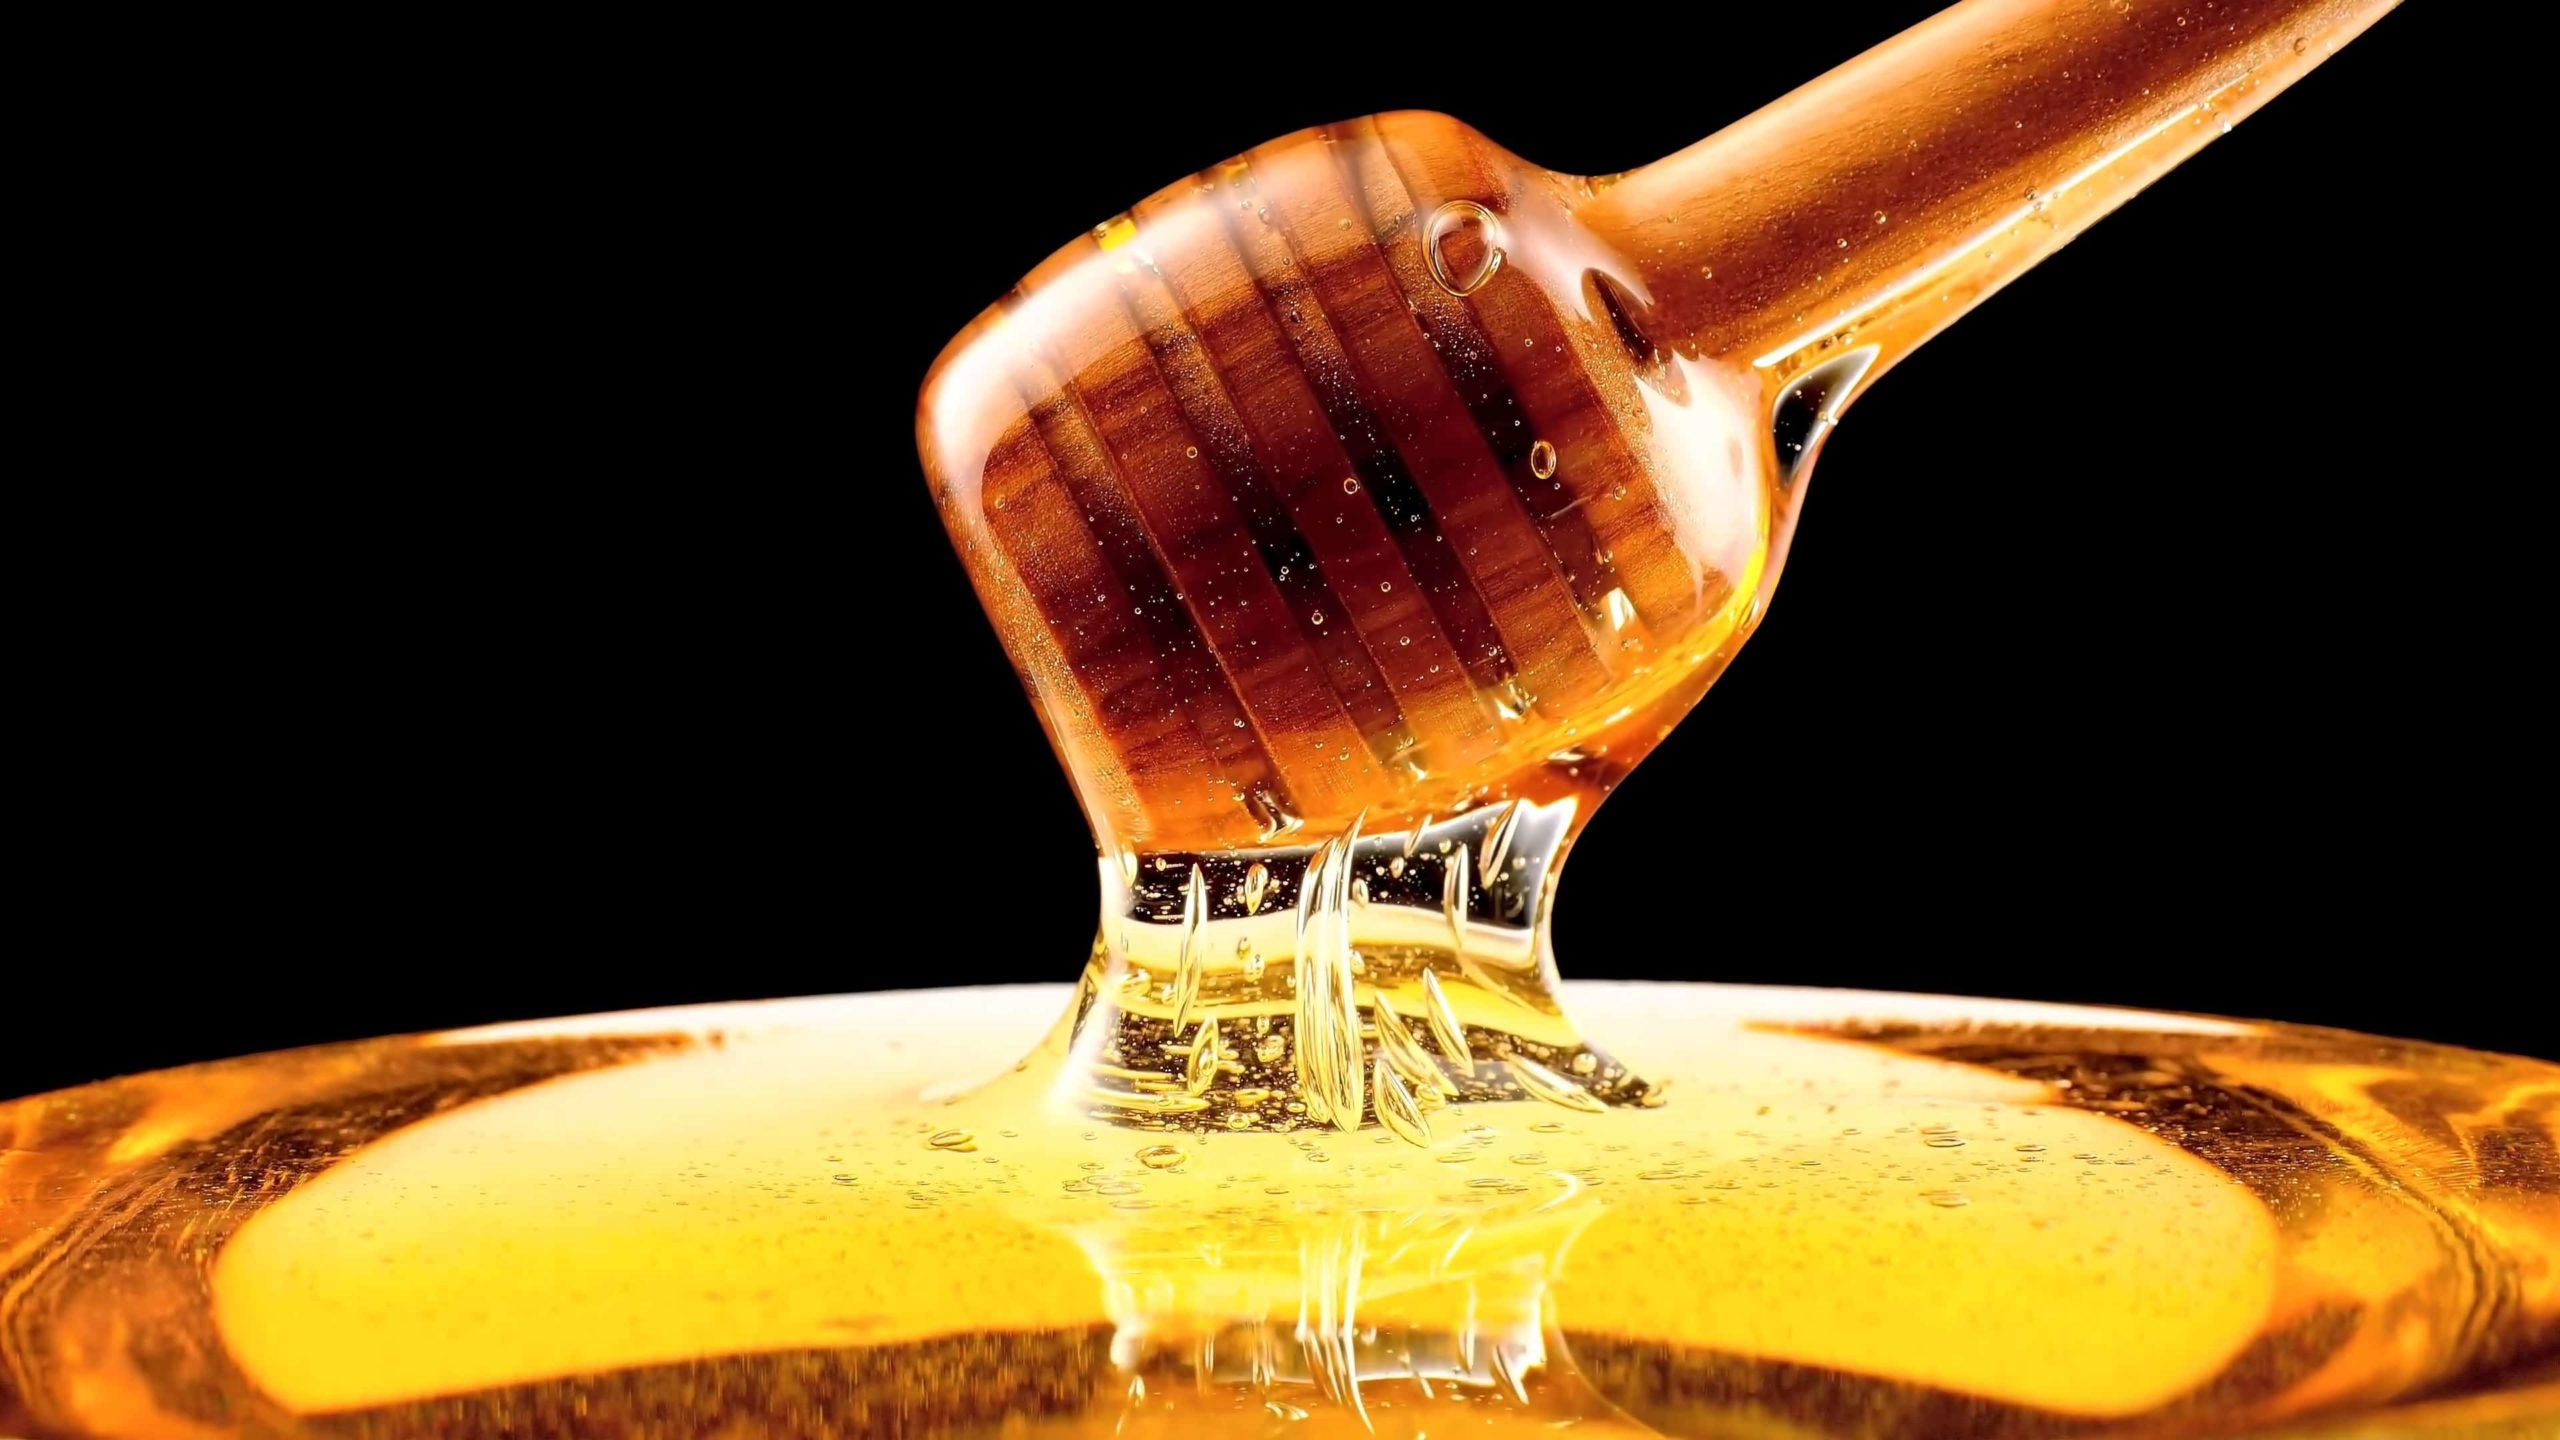 India's leading honey brands sold honey adulterated with sugar syrup